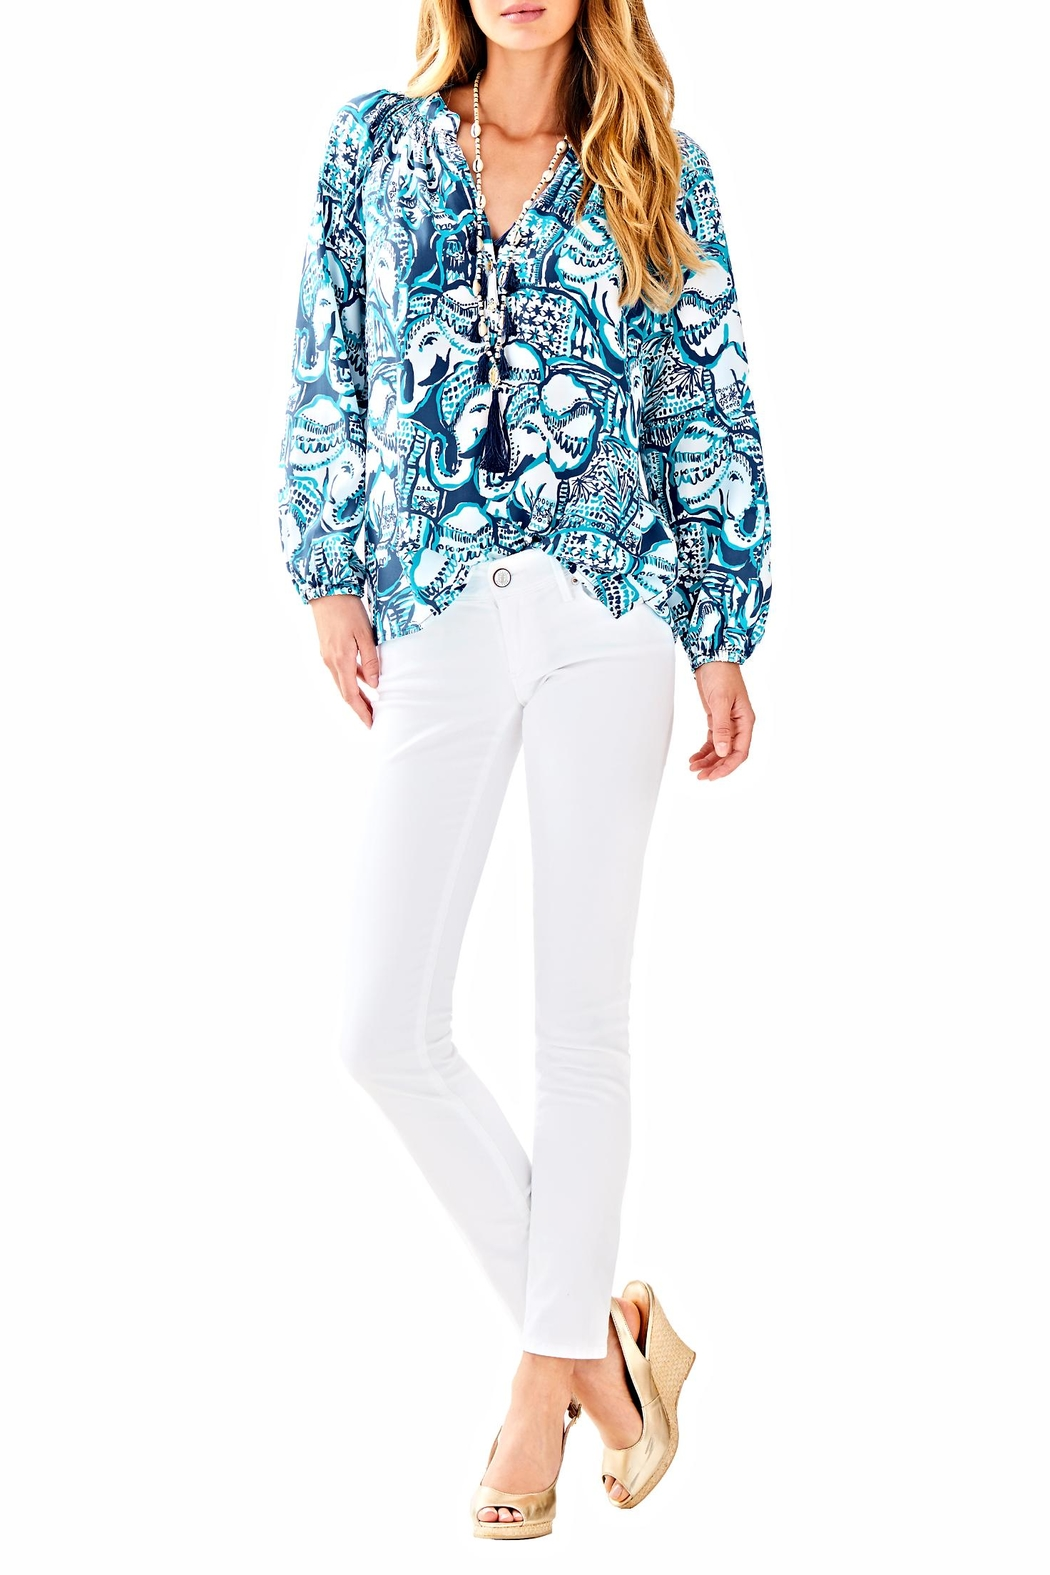 Lilly Pulitzer Elsa Top - Side Cropped Image